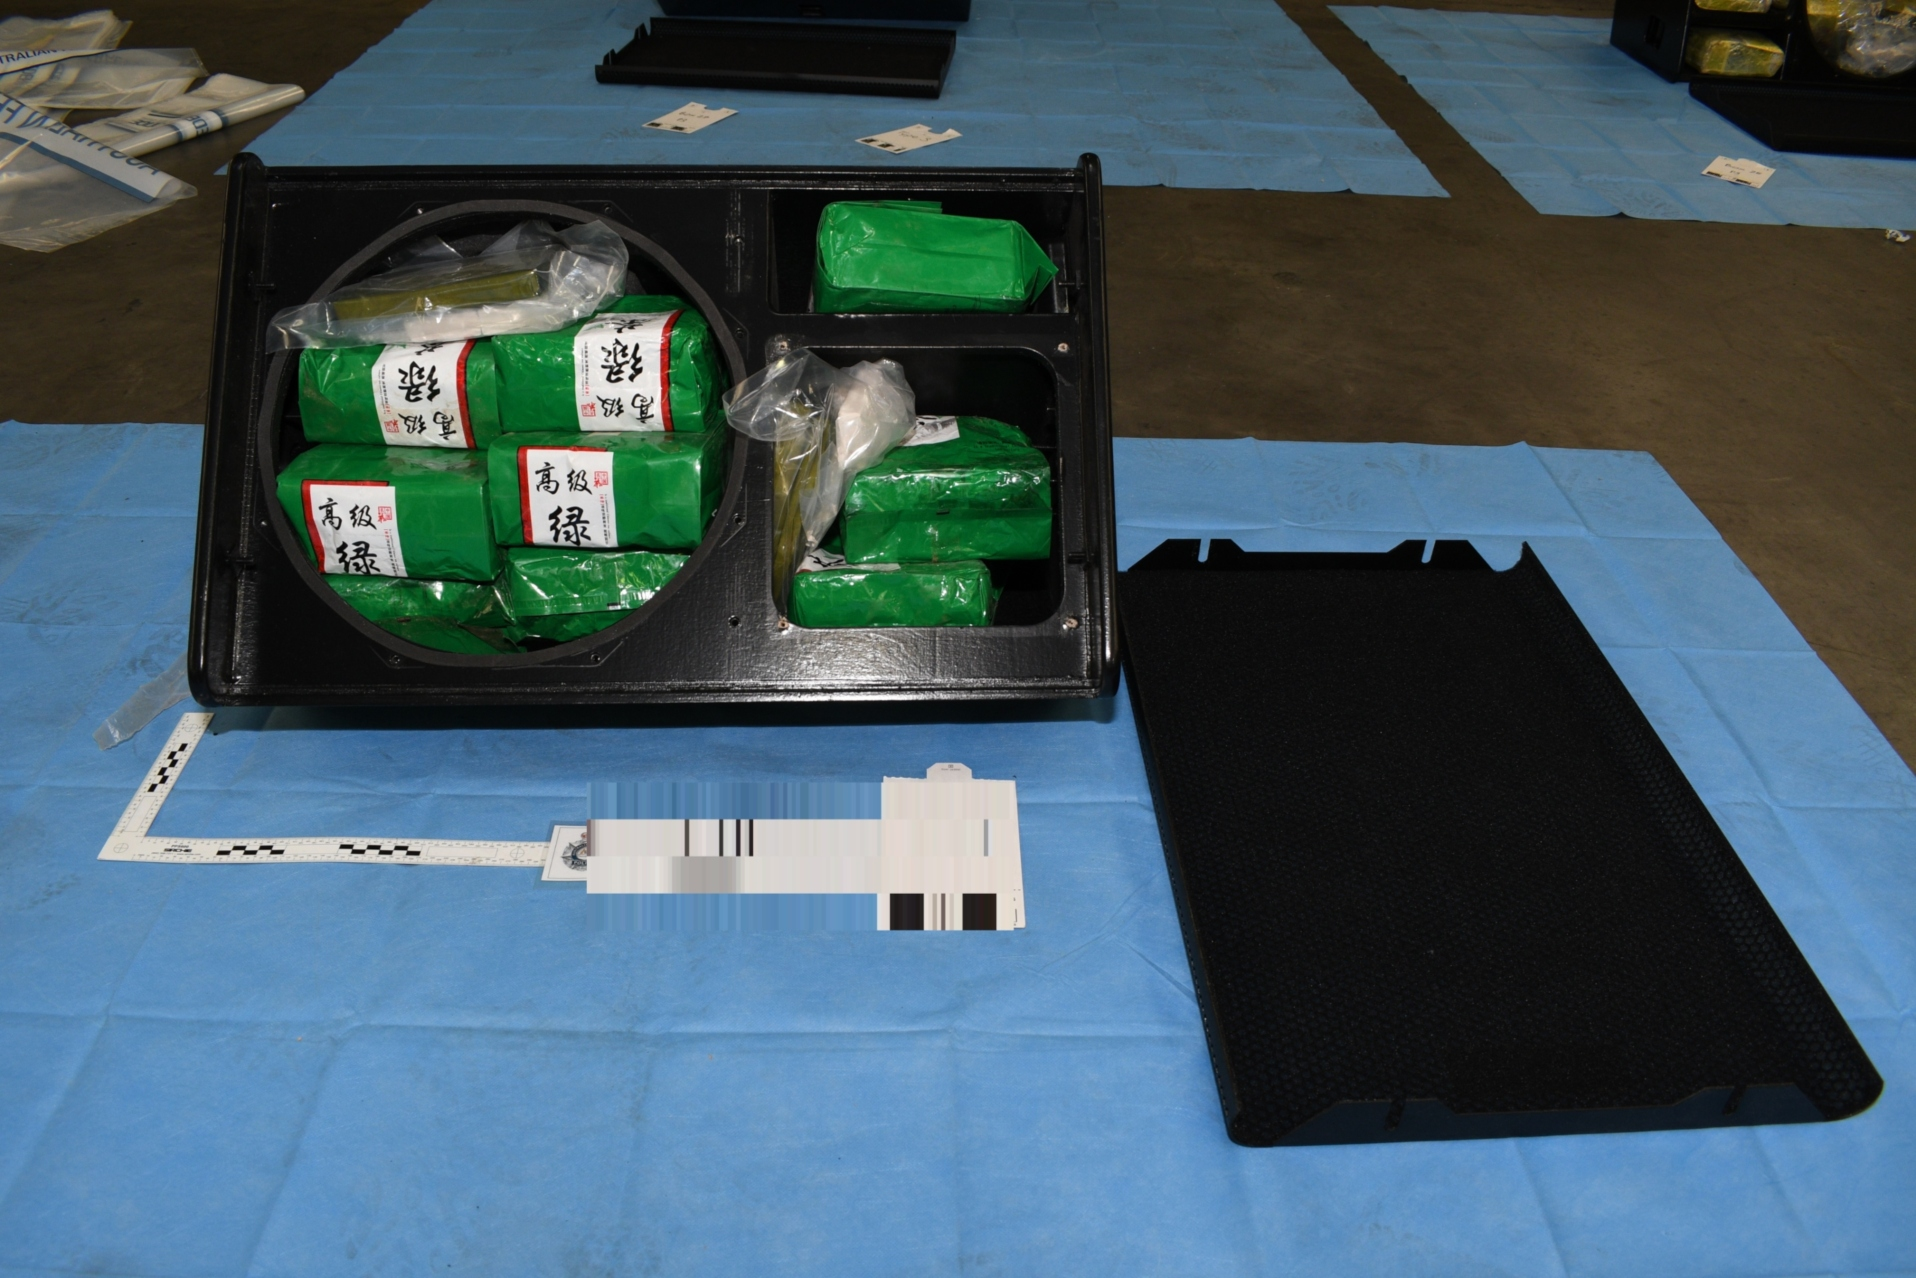 Stereos containing meth (Australian Federal Police)